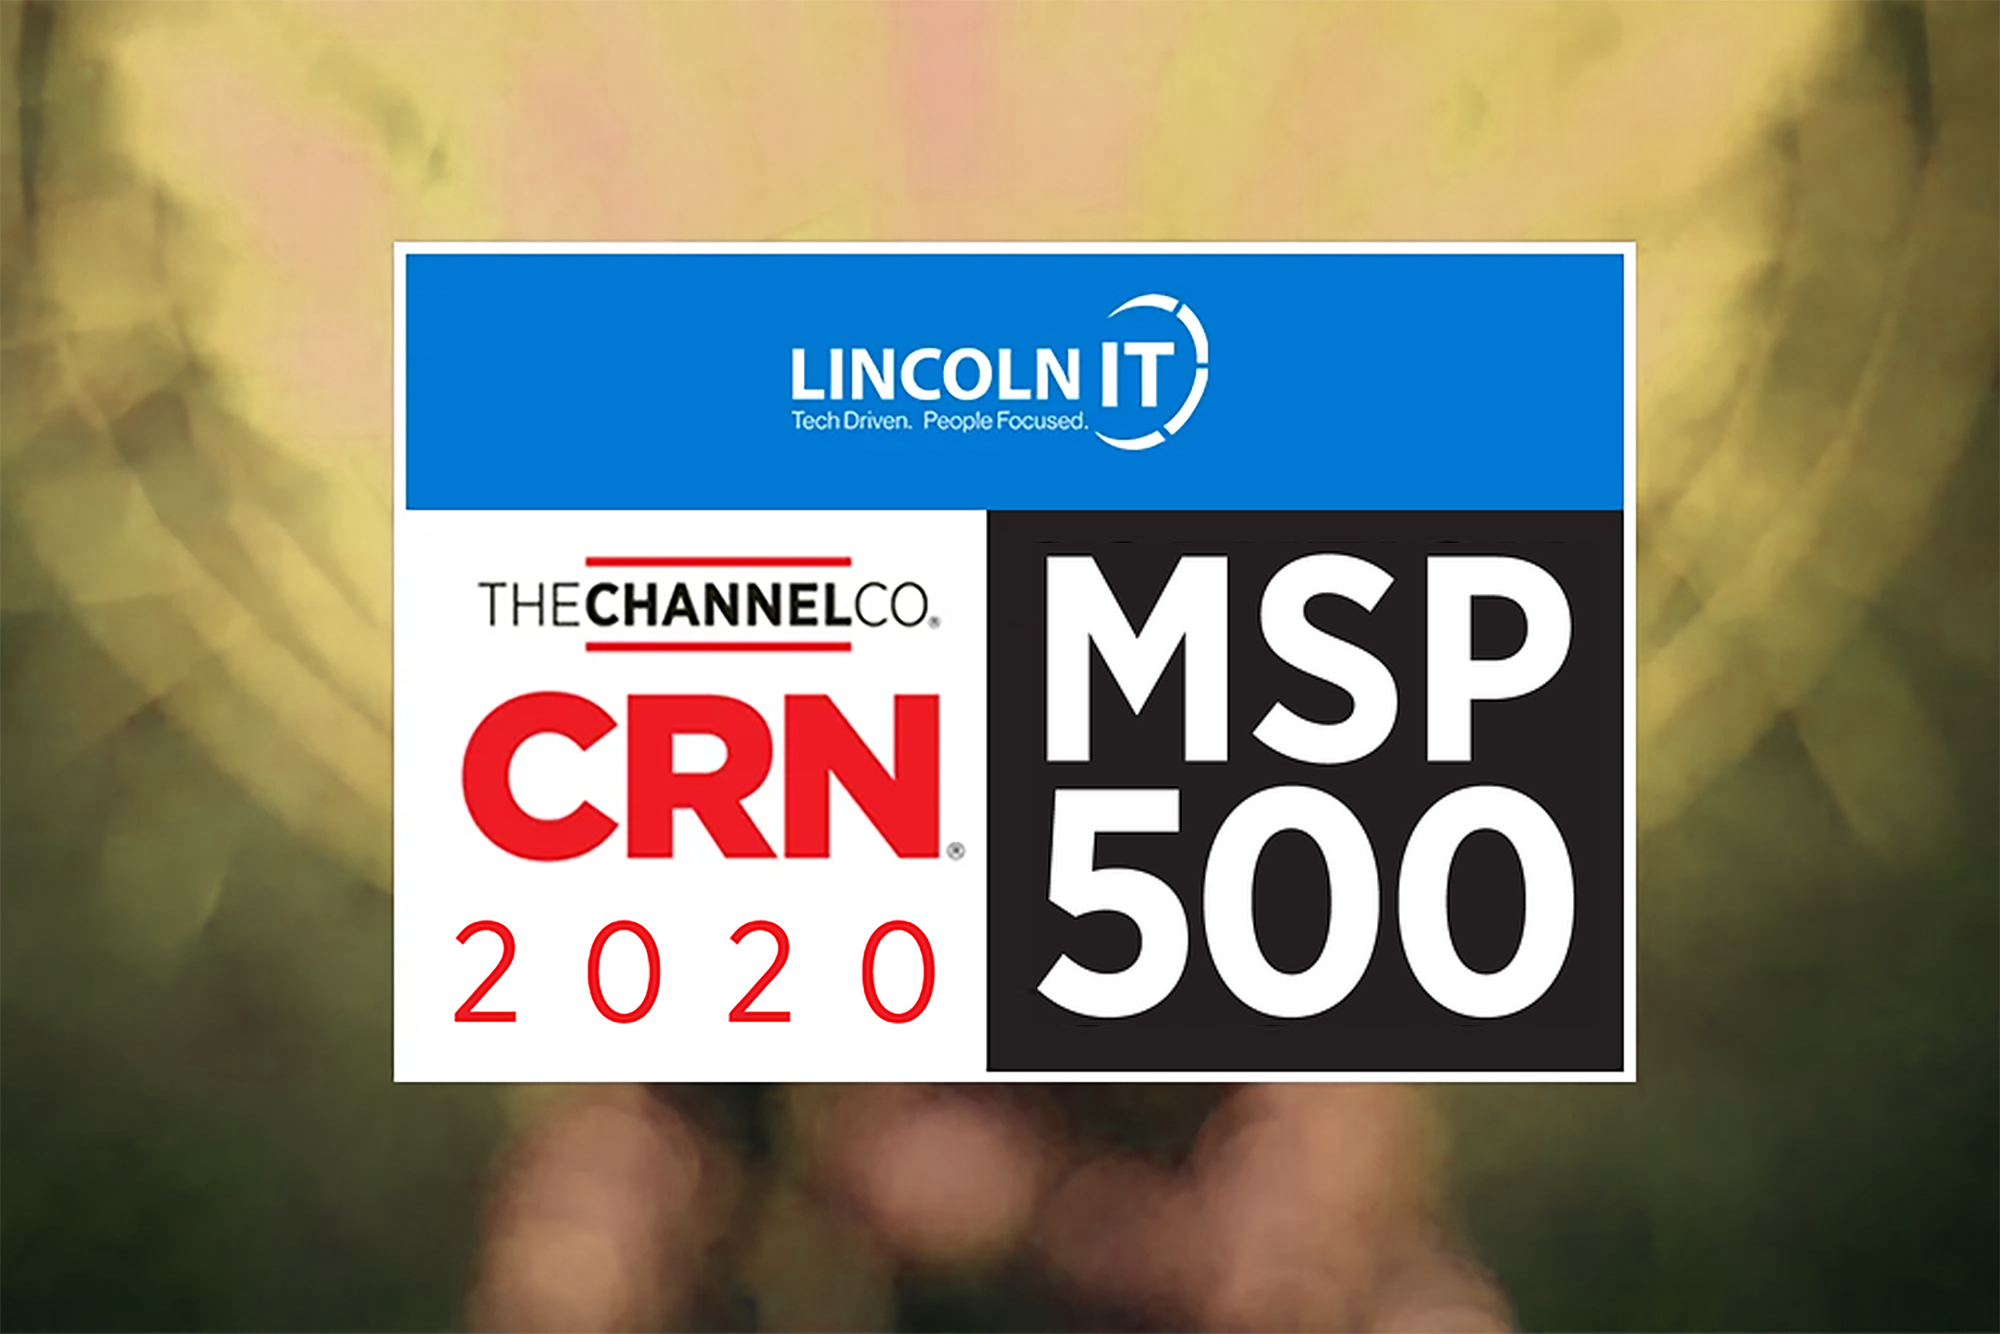 LincolnIT award winners for CRN MSP 500 in 2020